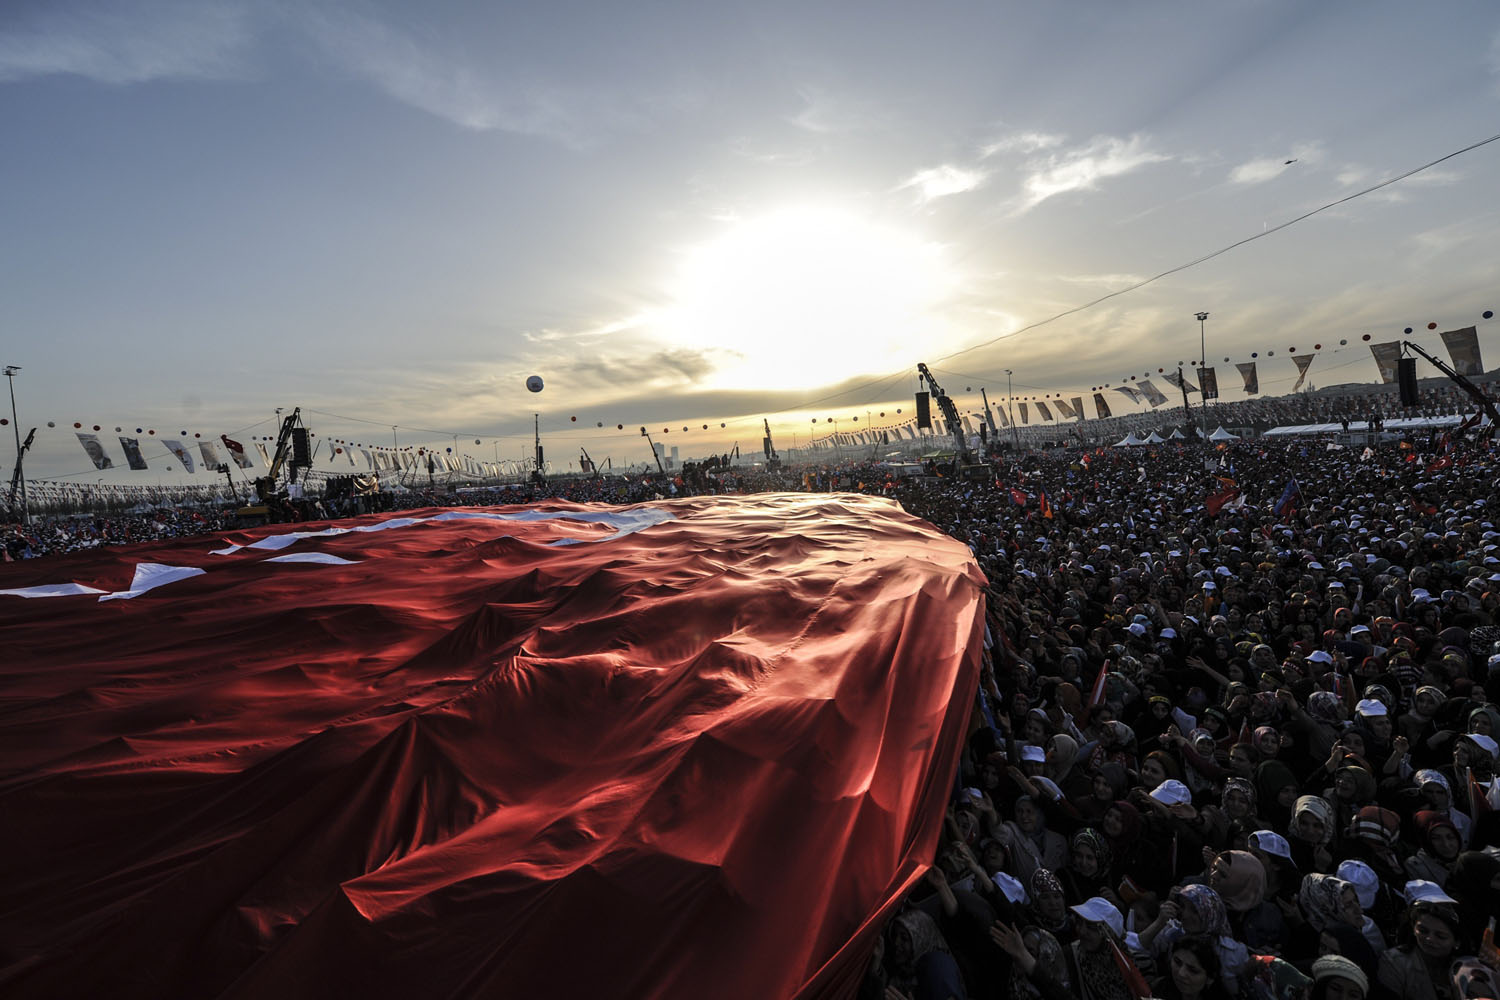 Mar. 23, 2014. Supporters of Turkey's Prime Minister Tayyip Erdogan hold a giant Turkish flag during an election rally in Istanbul.  Erdogan rallied hundreds of thousands of supporters on Sunday, dismissing accusations of intolerance by Western and domestic critics.